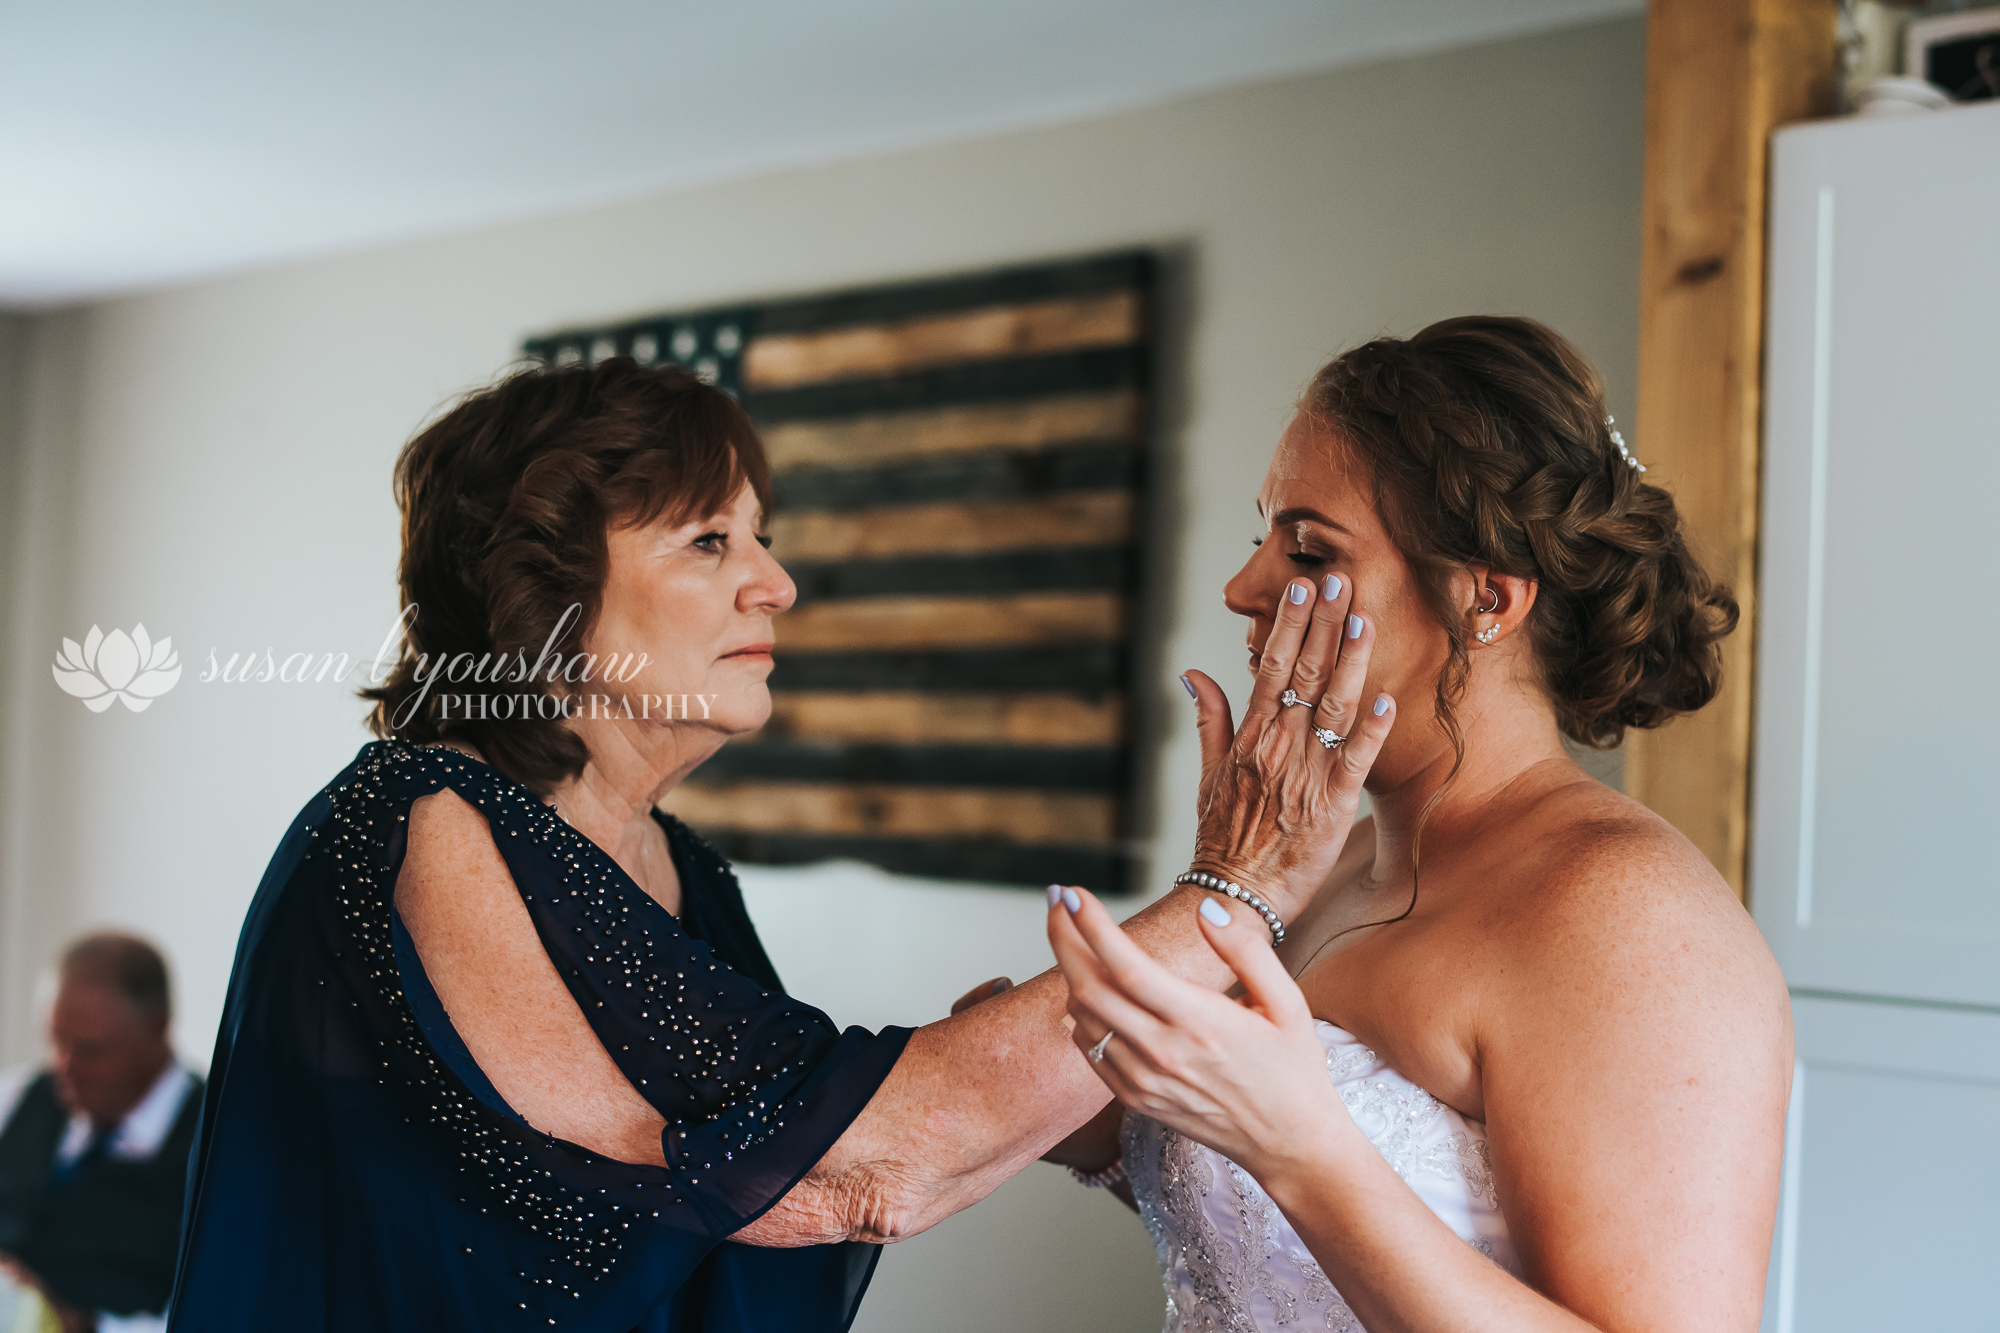 Erin and Jason Wedding Photos 07-06-2019 SLY Photography-30.jpg